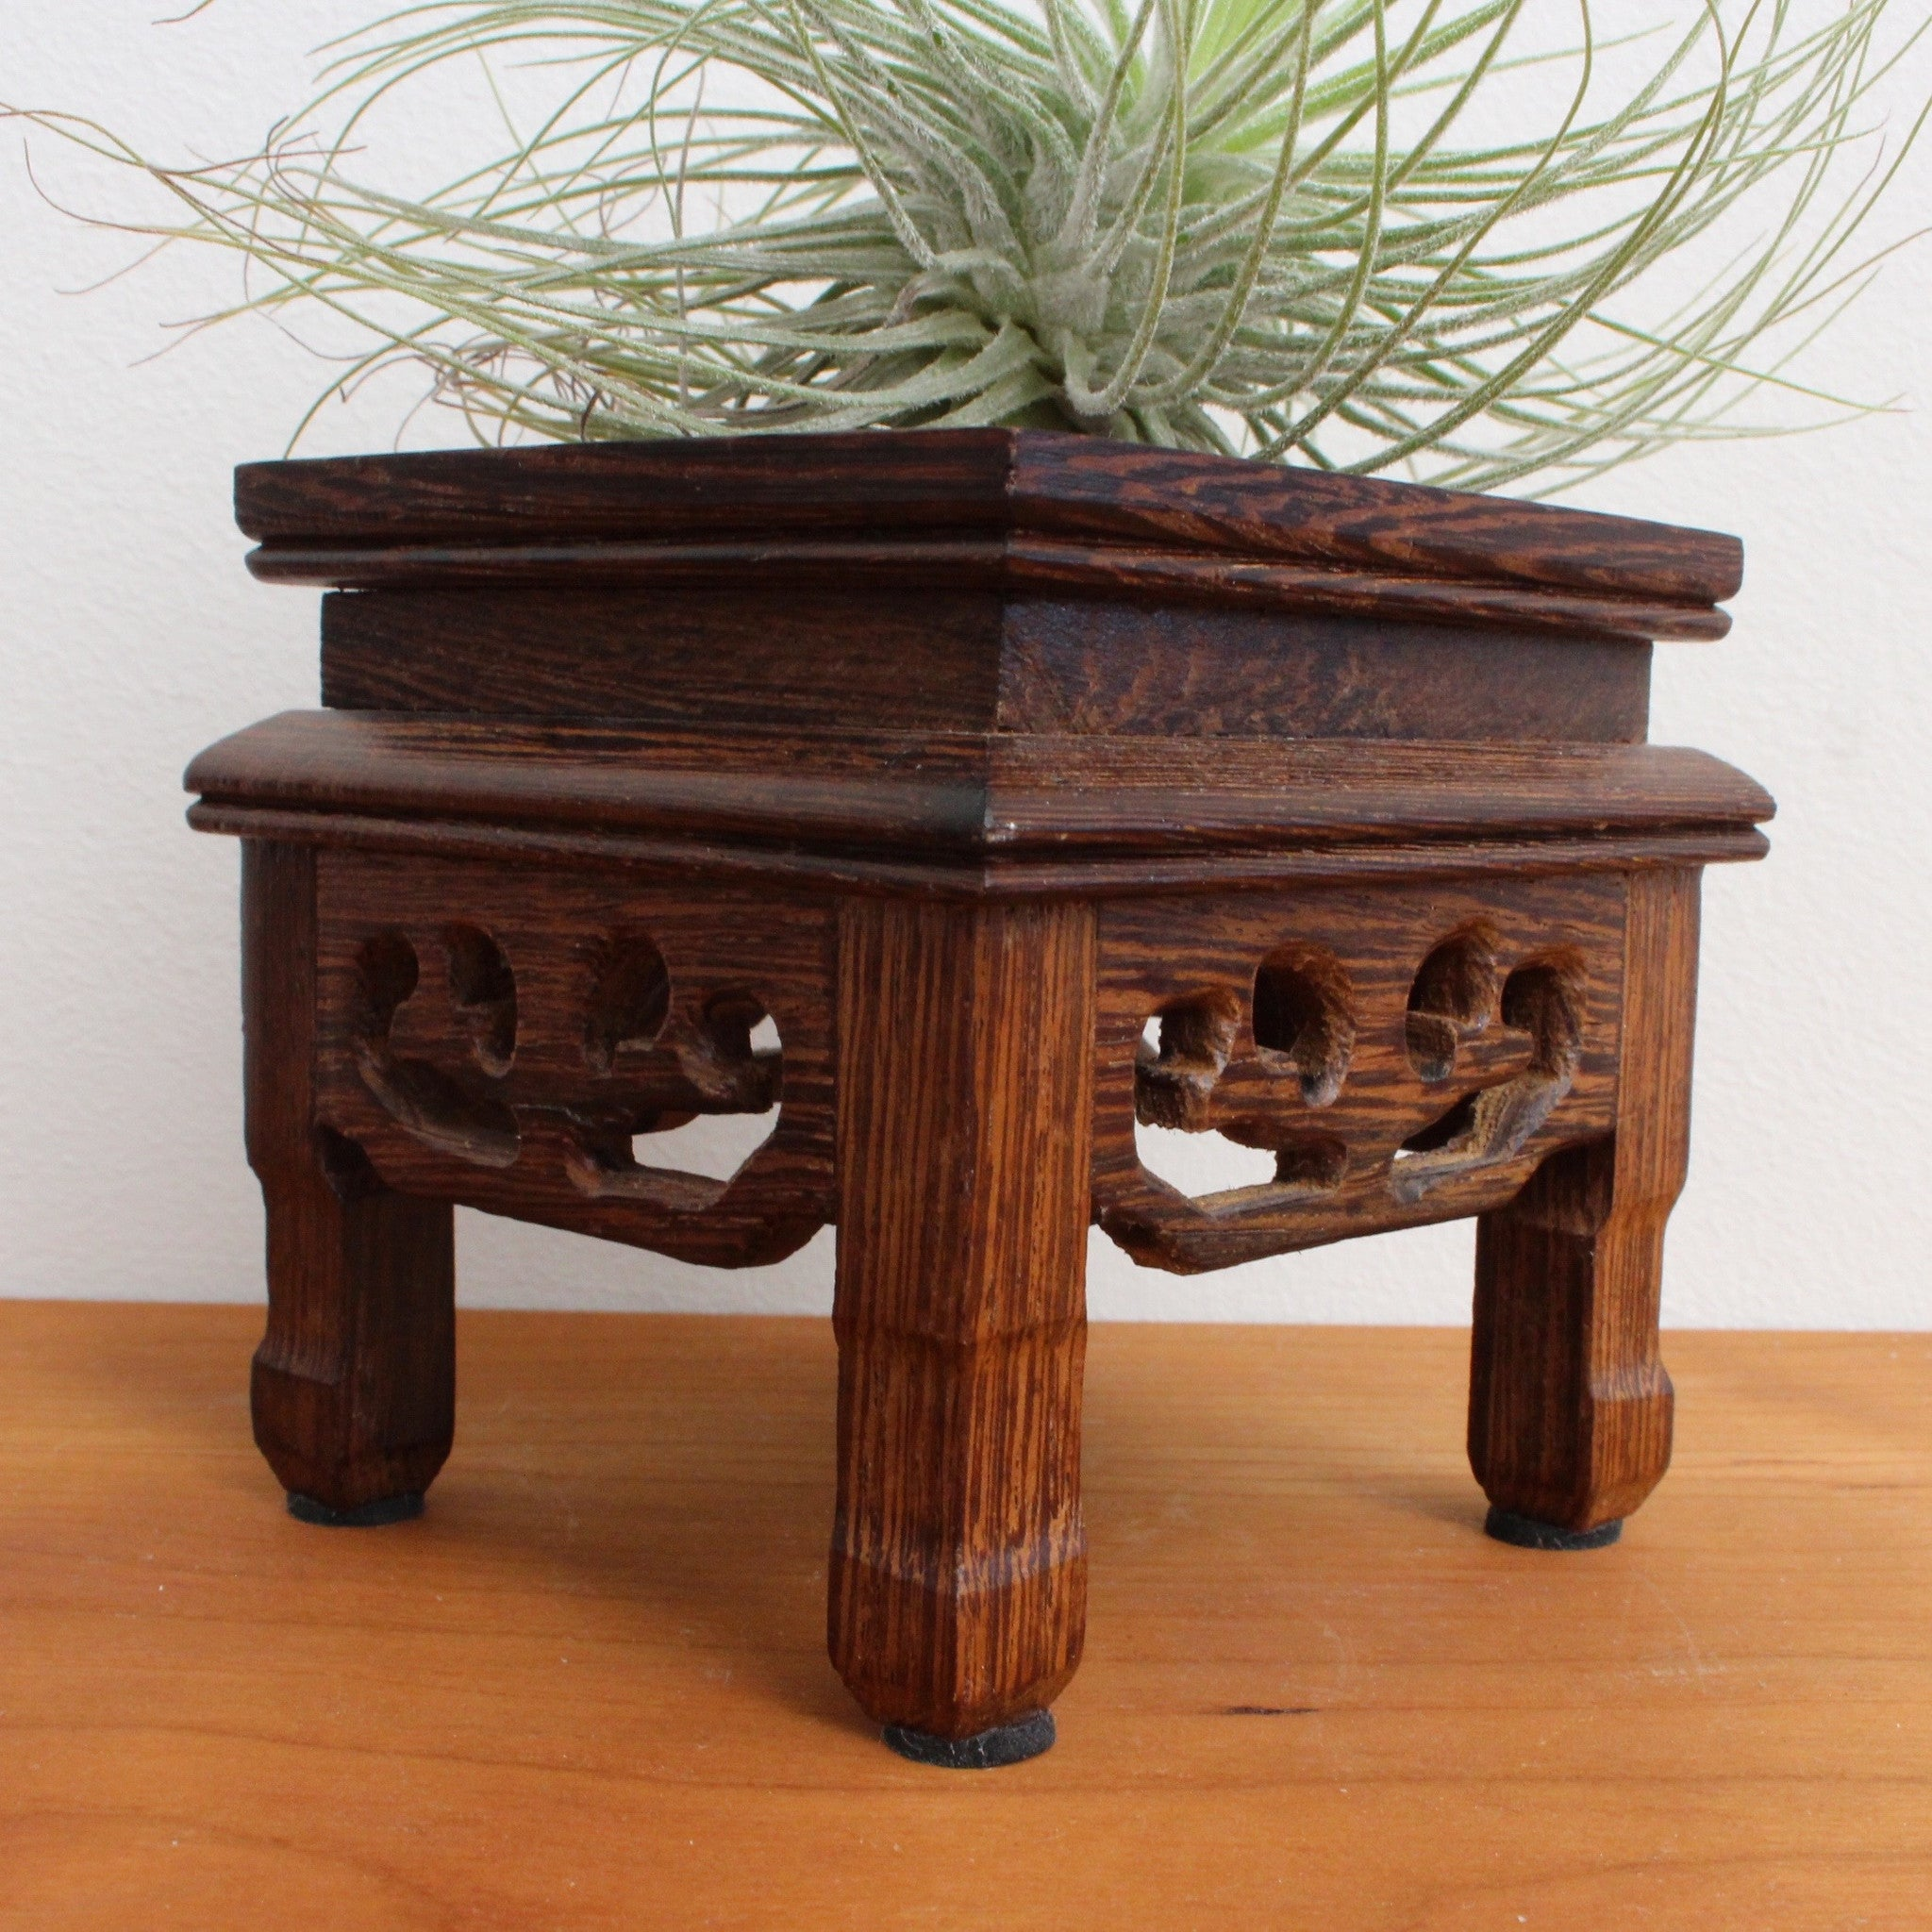 Miniature Chinese Wooden Table Display Stand